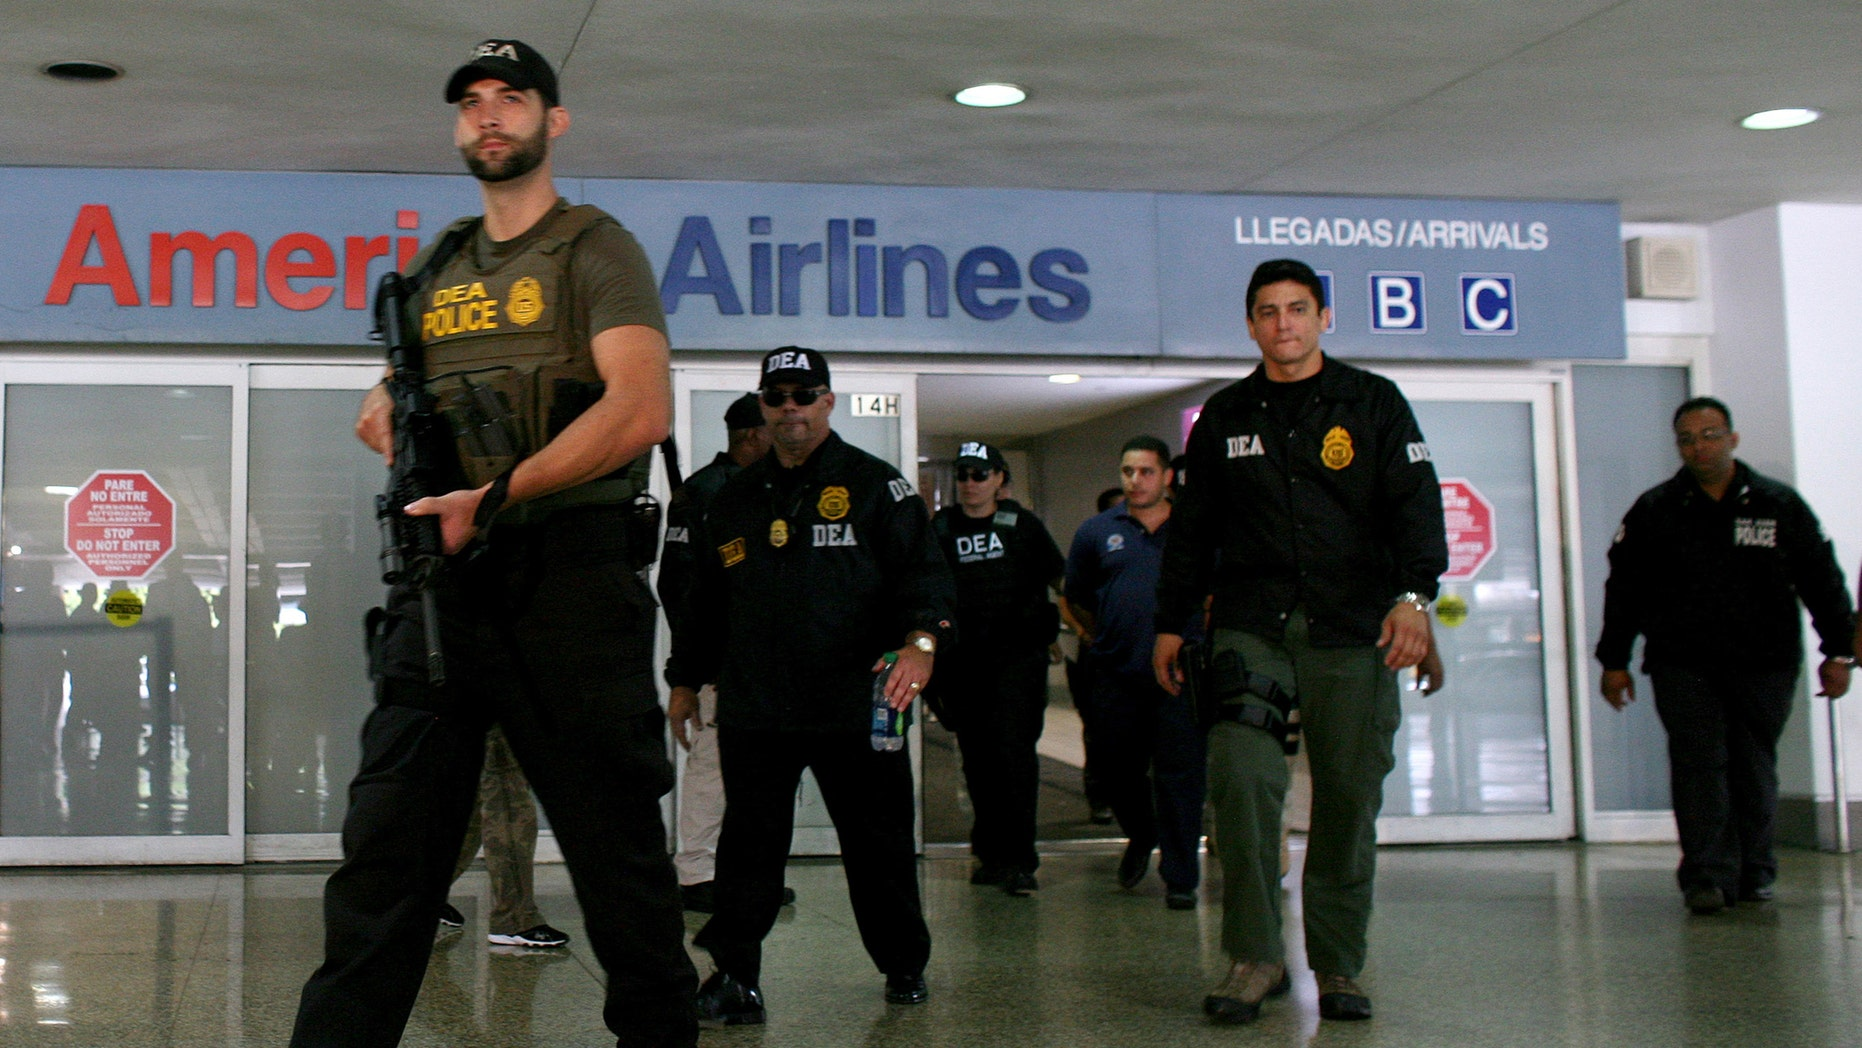 FILE - In this June 6, 2012 file photo, federal agents with the Drug Enforcement Administration escort a handcuffed drug smuggling suspect, at the airport in San Juan, Puerto Rico. U.S. federal agents will start targeting high-level drug traffickers in Puerto Rico after gathering intelligence during a three-month blitz on criminal activity in the U.S. territory, the Department of Homeland Security said Thursday, Sept. 26, 2013 (AP Photo/Ricardo Arduengo)